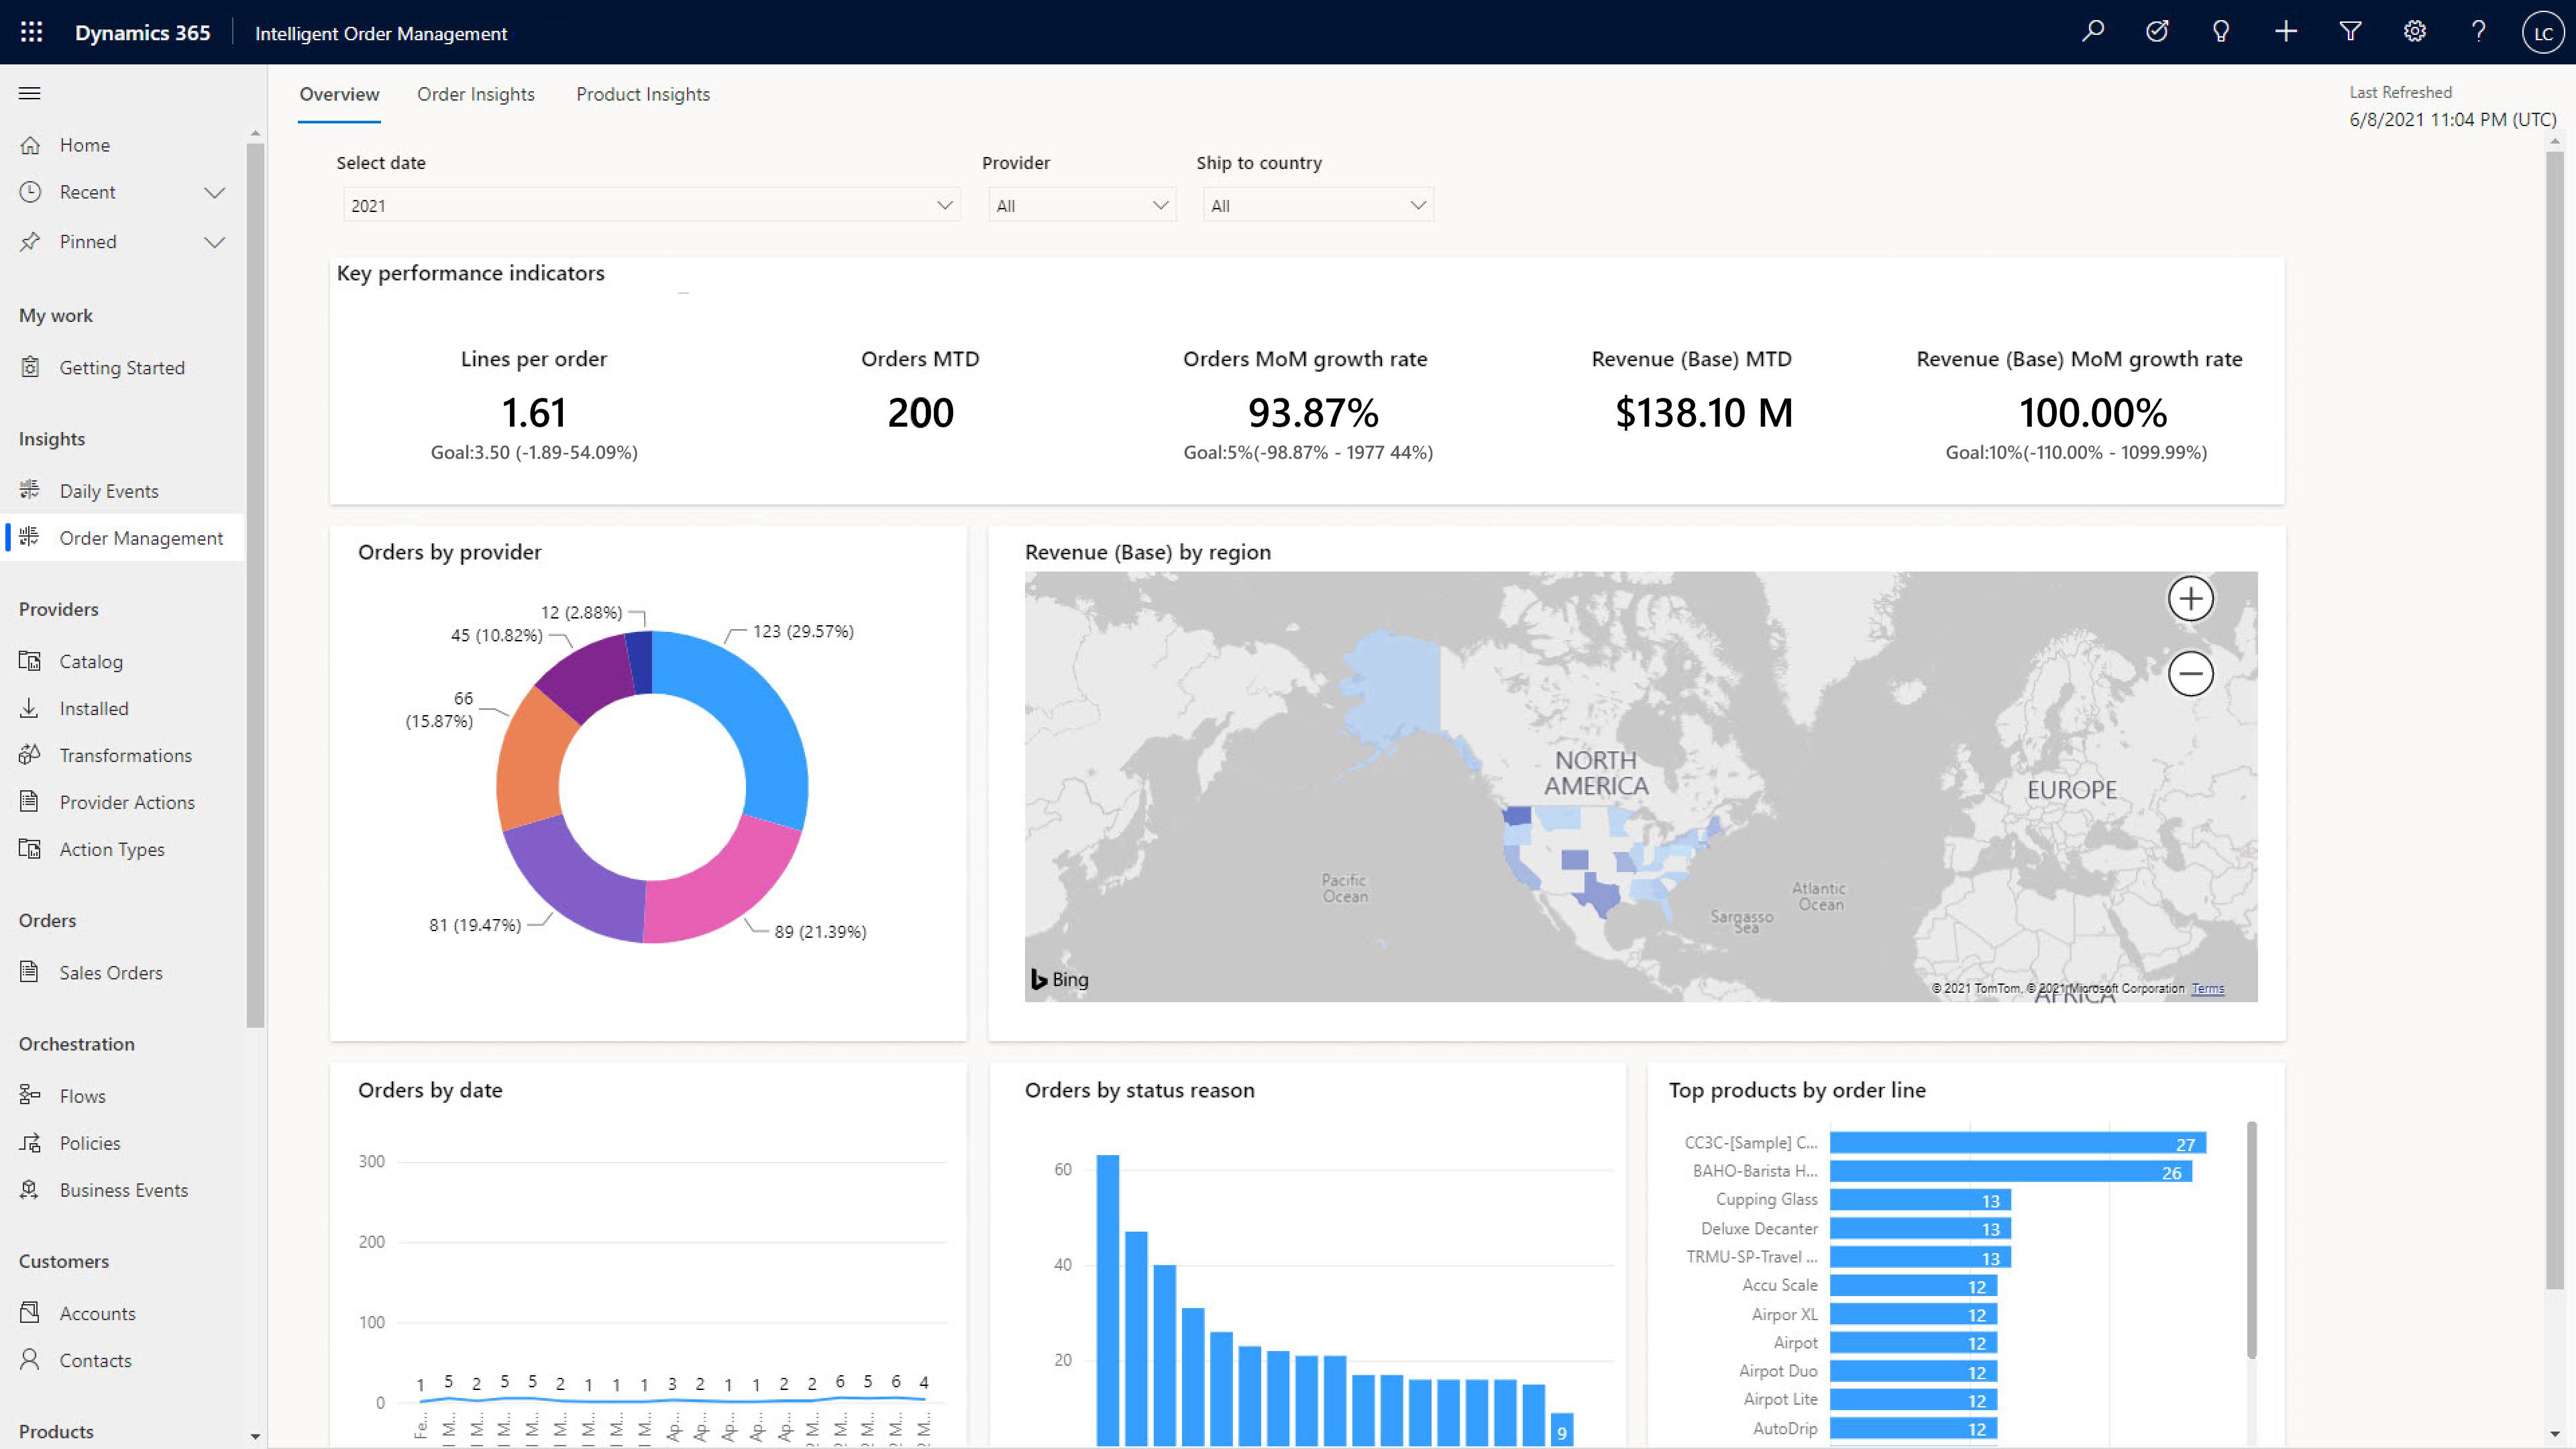 A screenshot of Microsoft Dynamics 365 Intelligent Order Management, a single solution that performs rules-based order orchestration leveraging real-time Inventory and AI.